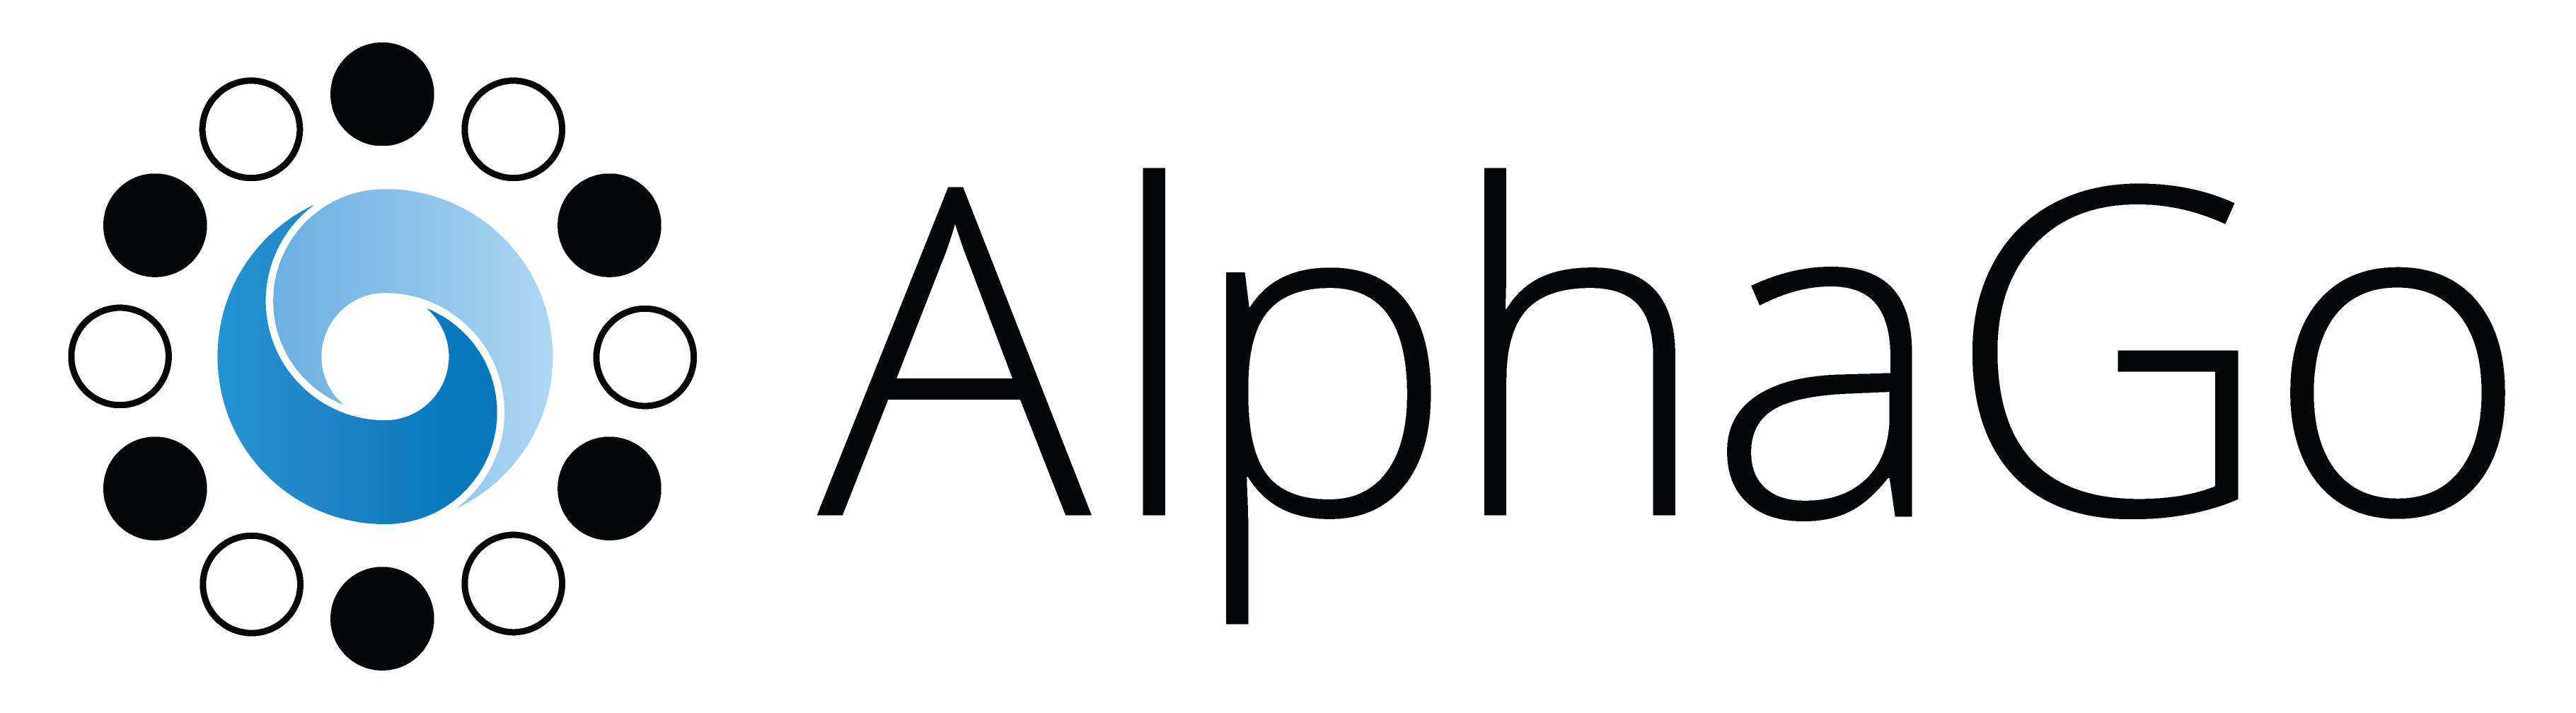 AlphaGo-Logotype-Black-Highres-300ppi